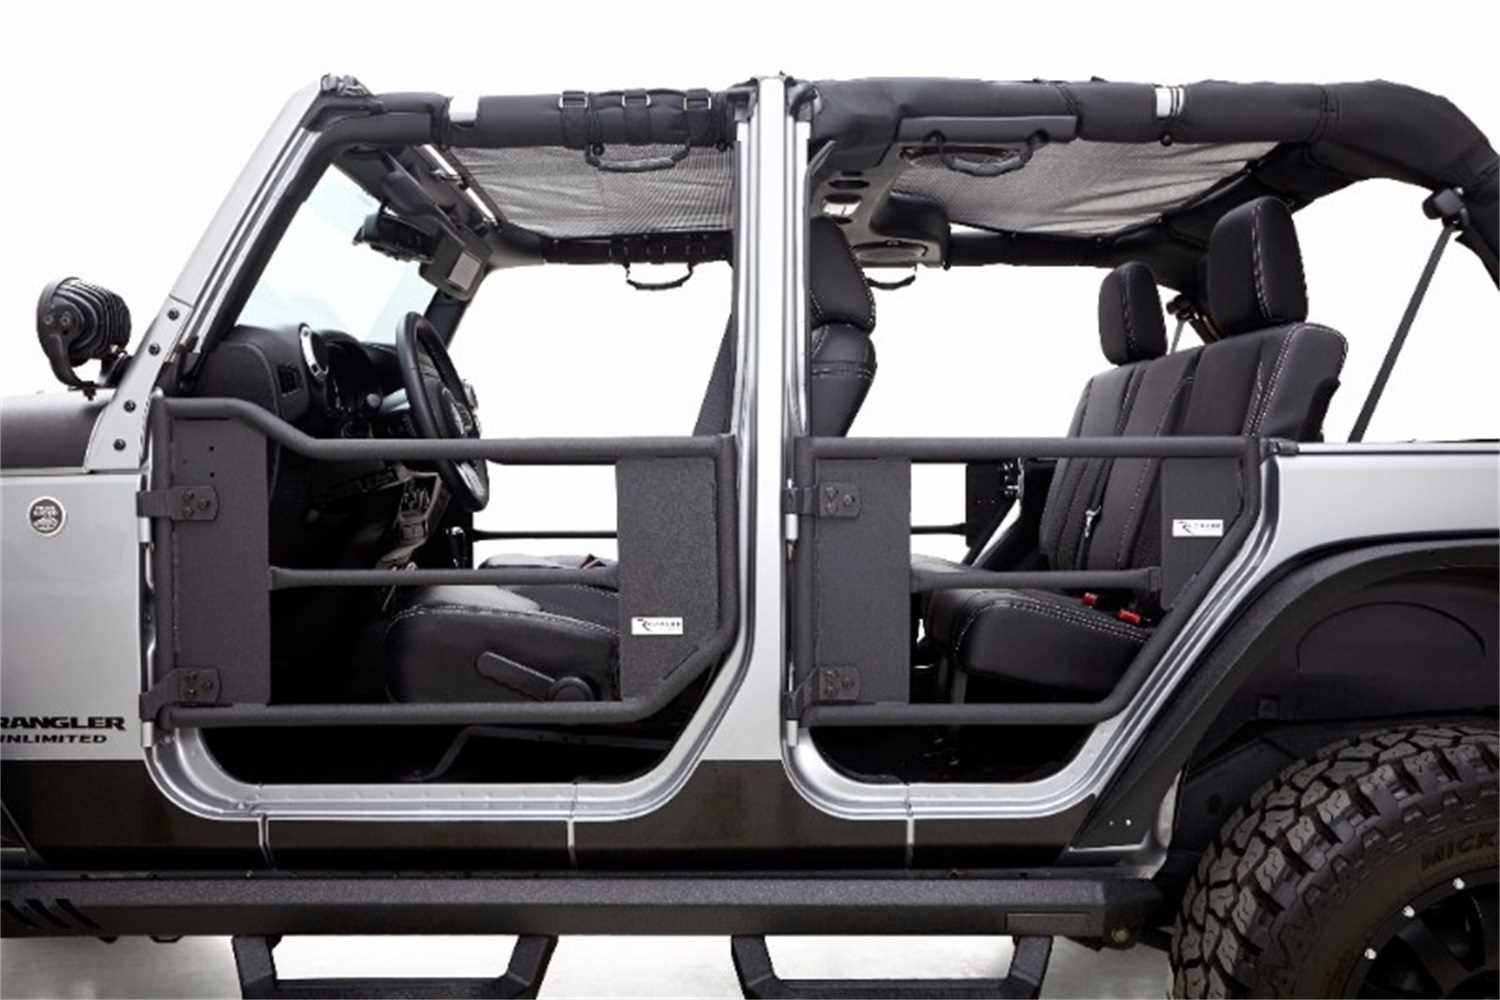 Trail Doors - Fits 2007 to 2017 JK Wrangler Unlimited and Rubicon Unlimited 4-door & Trail Doors - Fits 2007 to 2017 JK Wrangler Unlimited and Rubicon ... Pezcame.Com